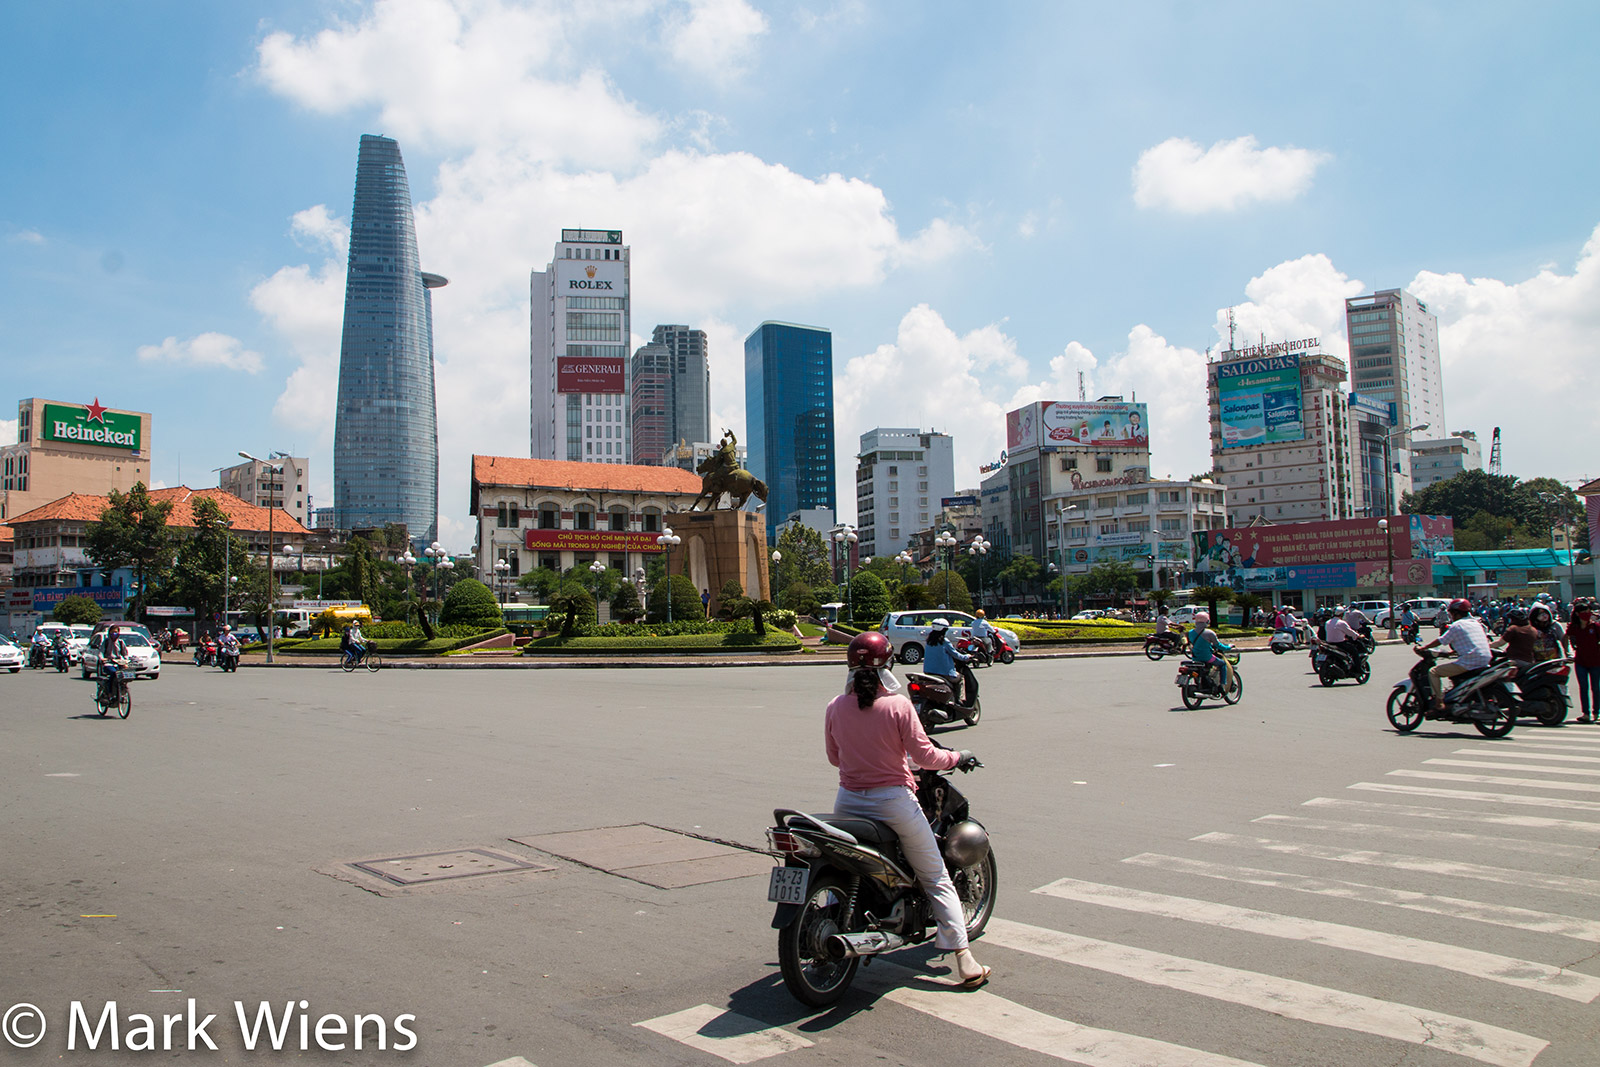 23 Things To Do In Saigon (Ho Chi Minh City): Top Attractions!